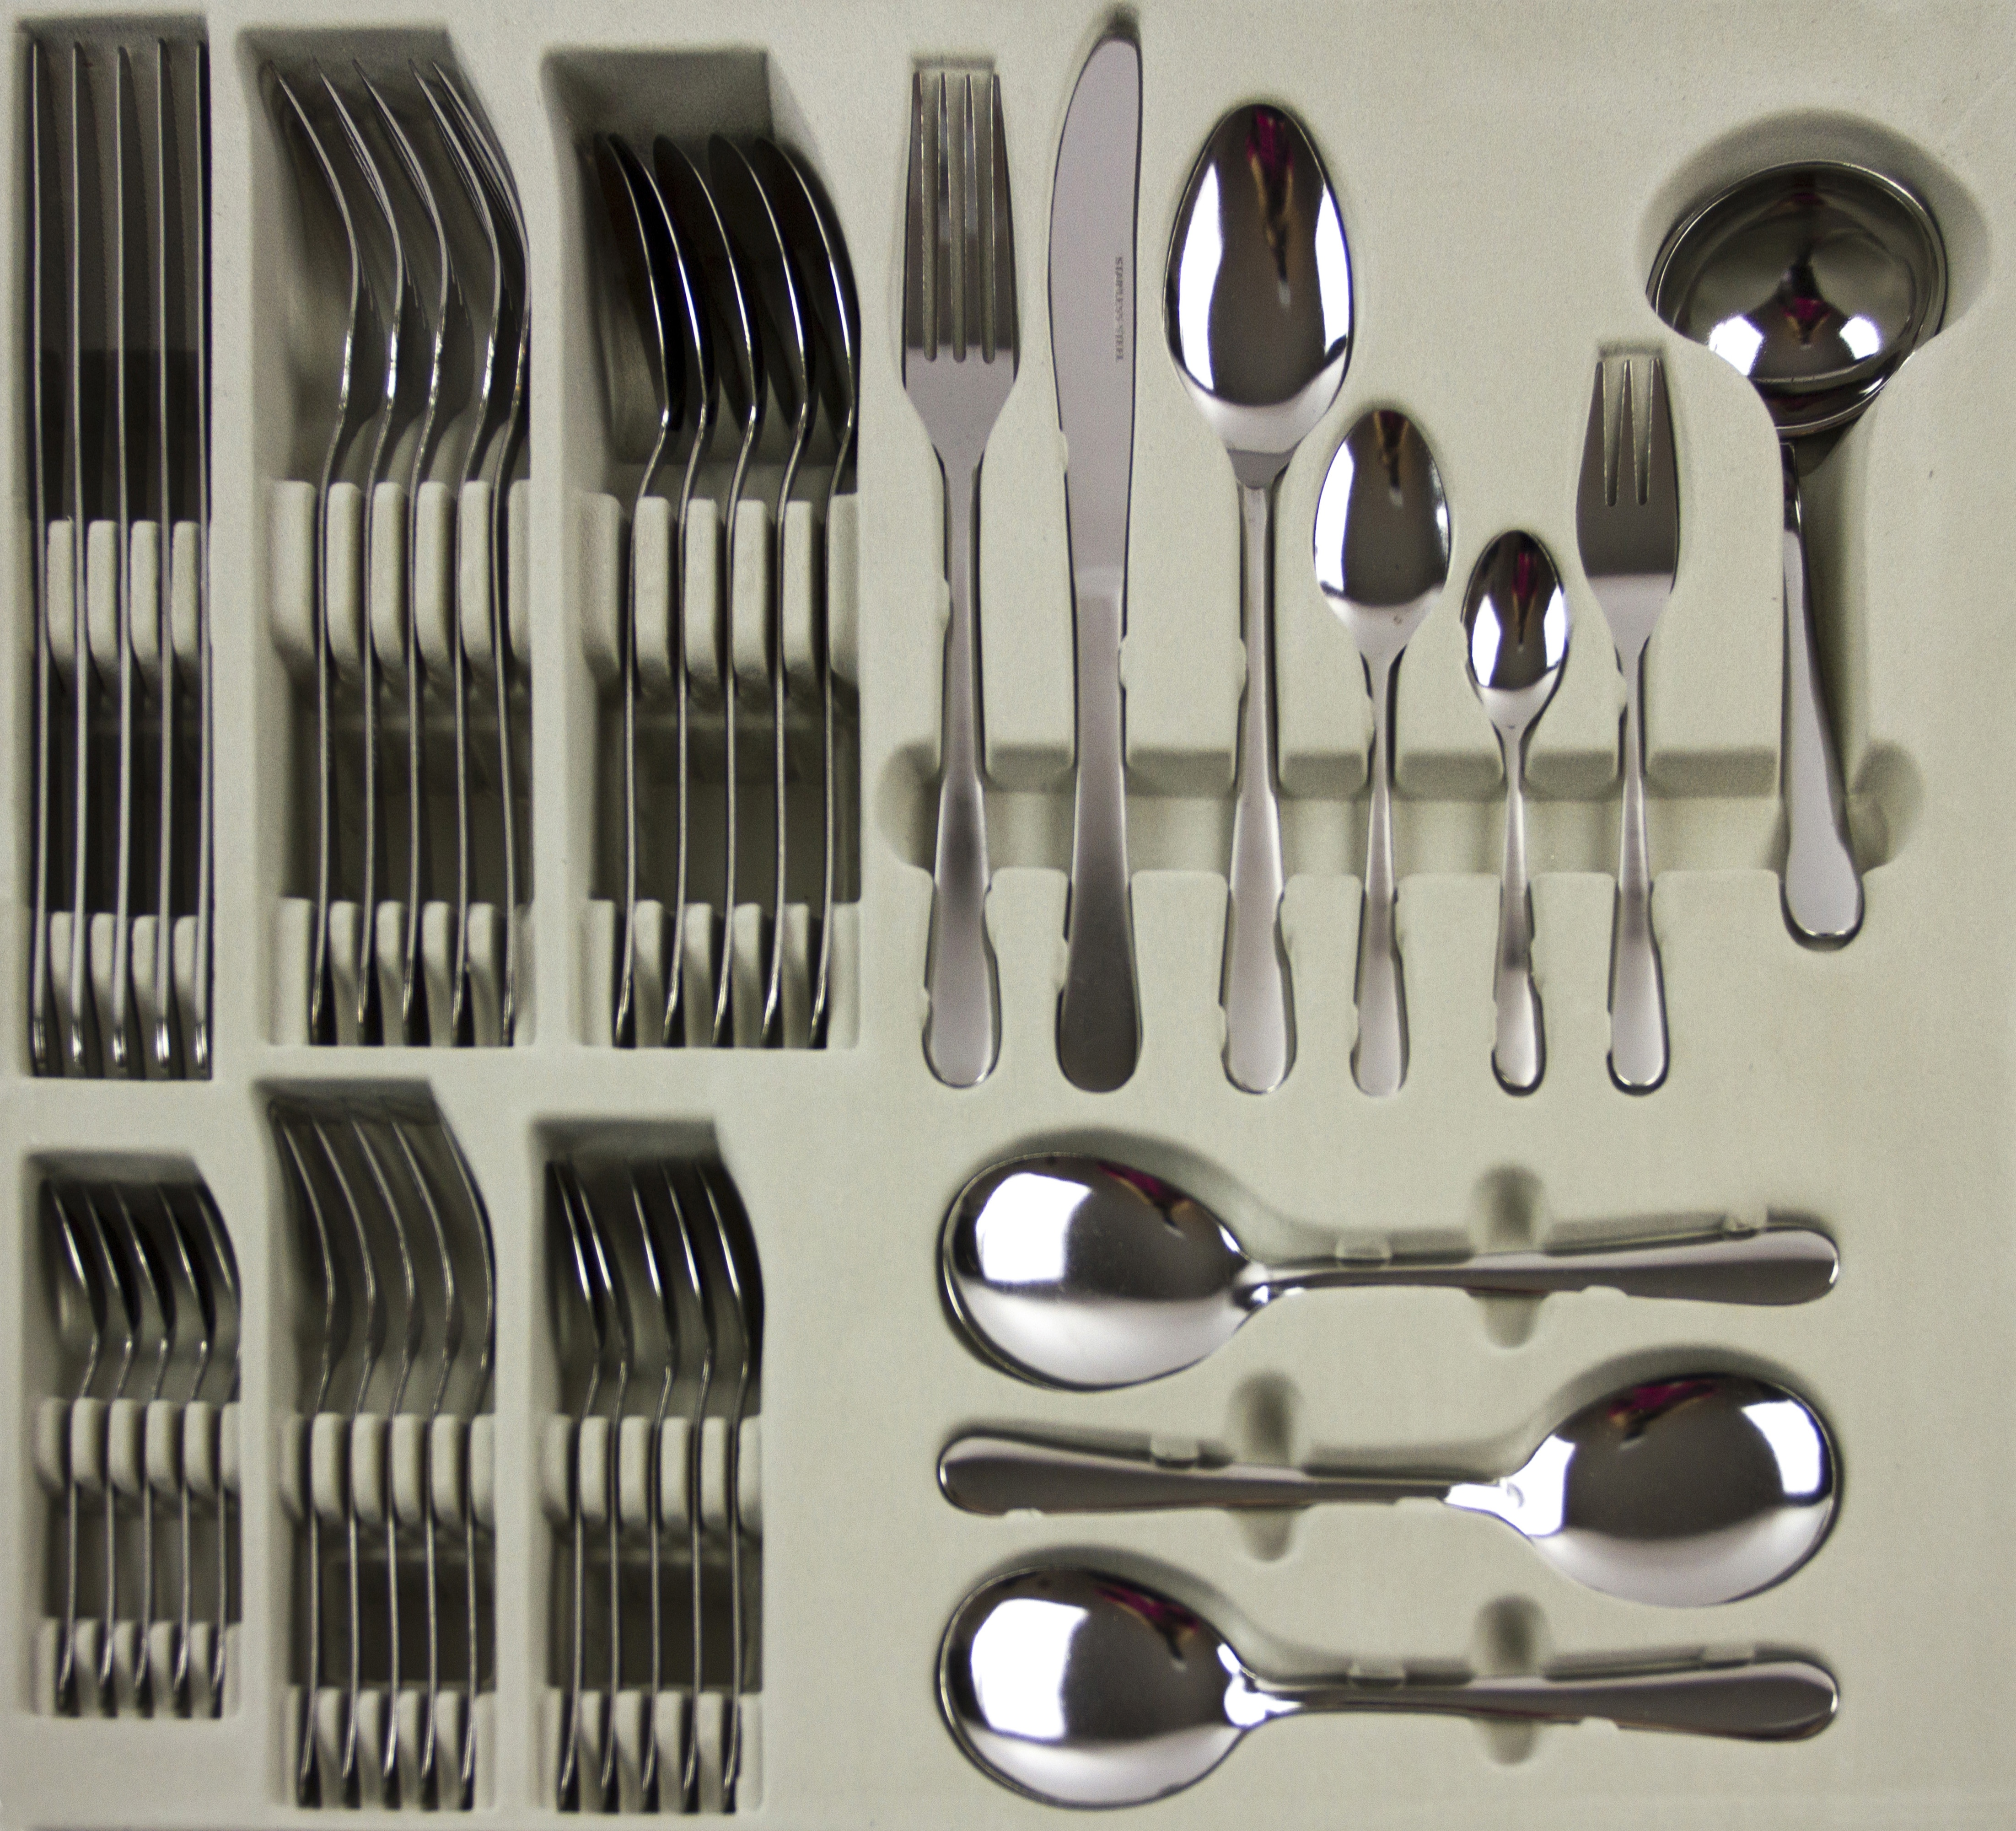 Item specifics & 16 24 or 40 Piece Stylish Stainless Steel Kitchen Cutlery Set ...